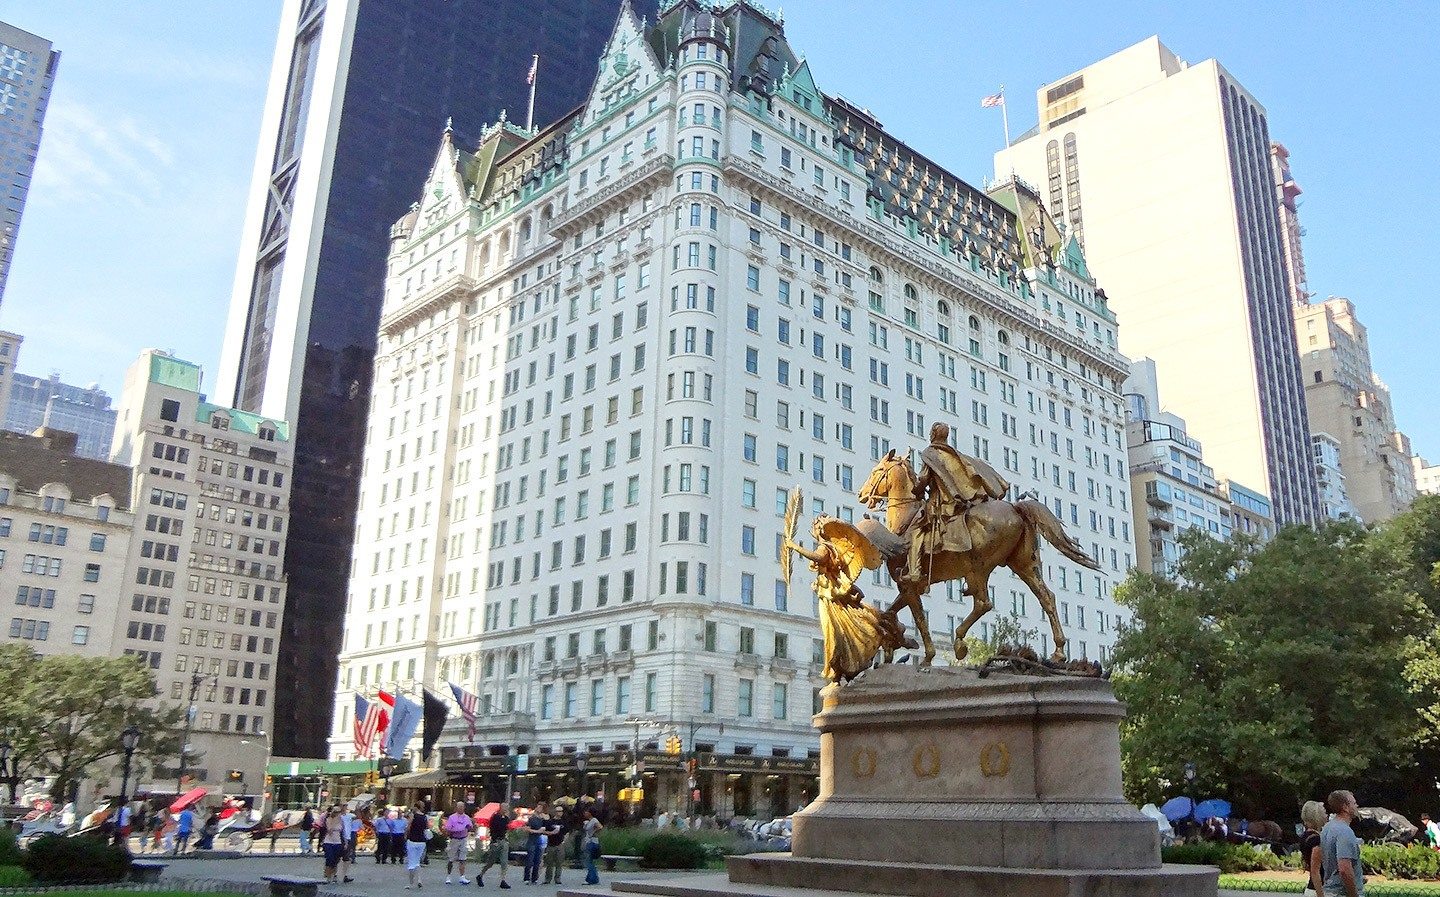 The Plaza Hotel, New York, where Home Alone 2 was filmed